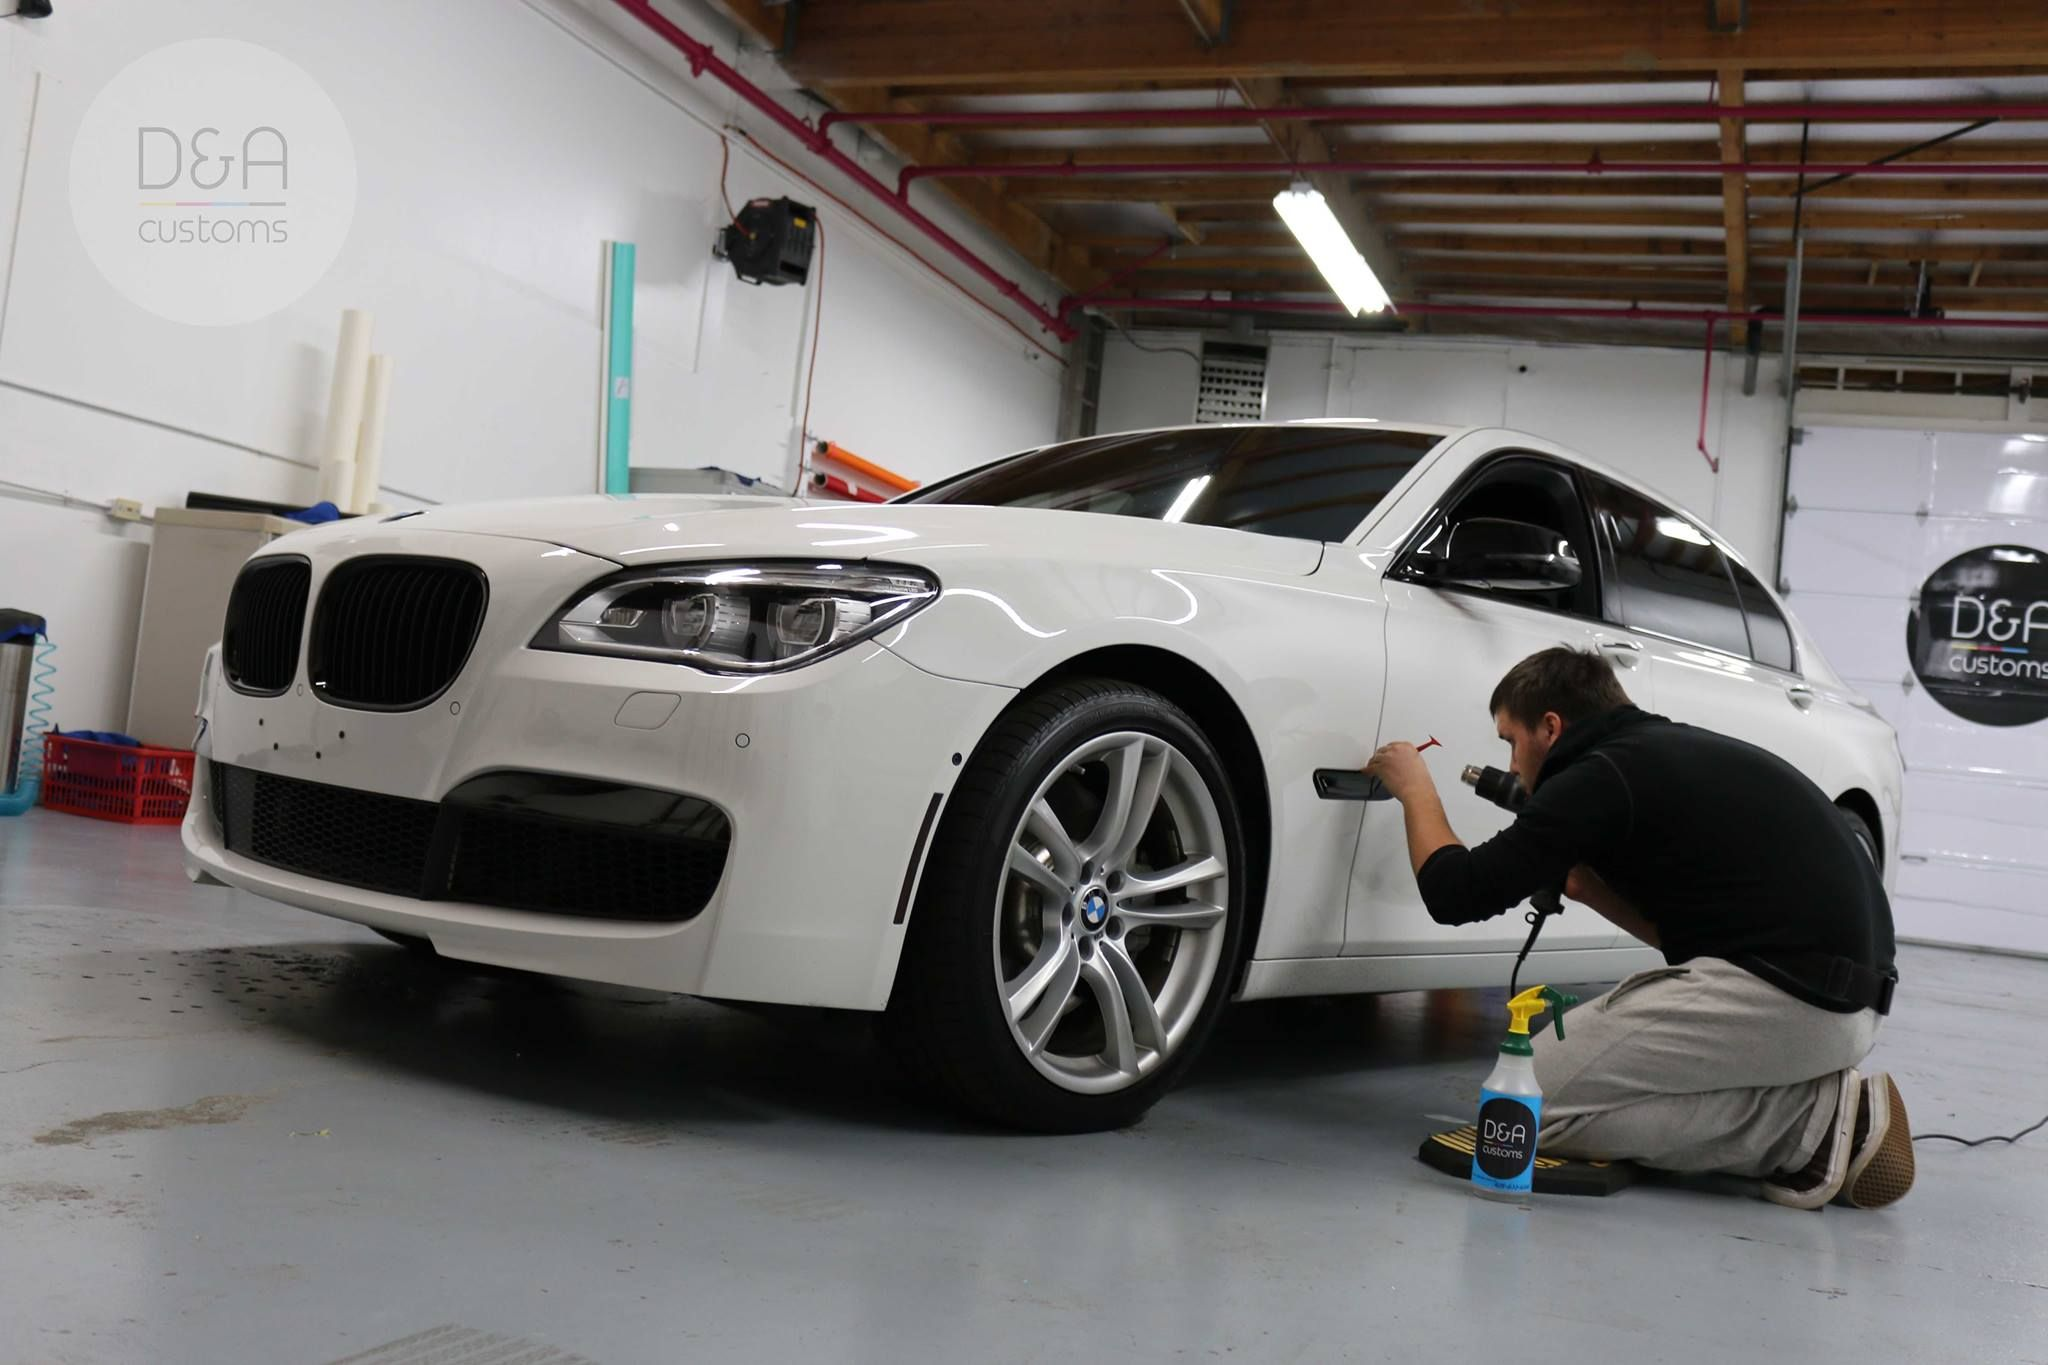 Bmw 7 Series De Chroming And Wrapped Side Mirror Caps In Gloss Black Dacustoms Wraps 425 633 6288 Car Graphics Commercial Window Tinting Car Wrap